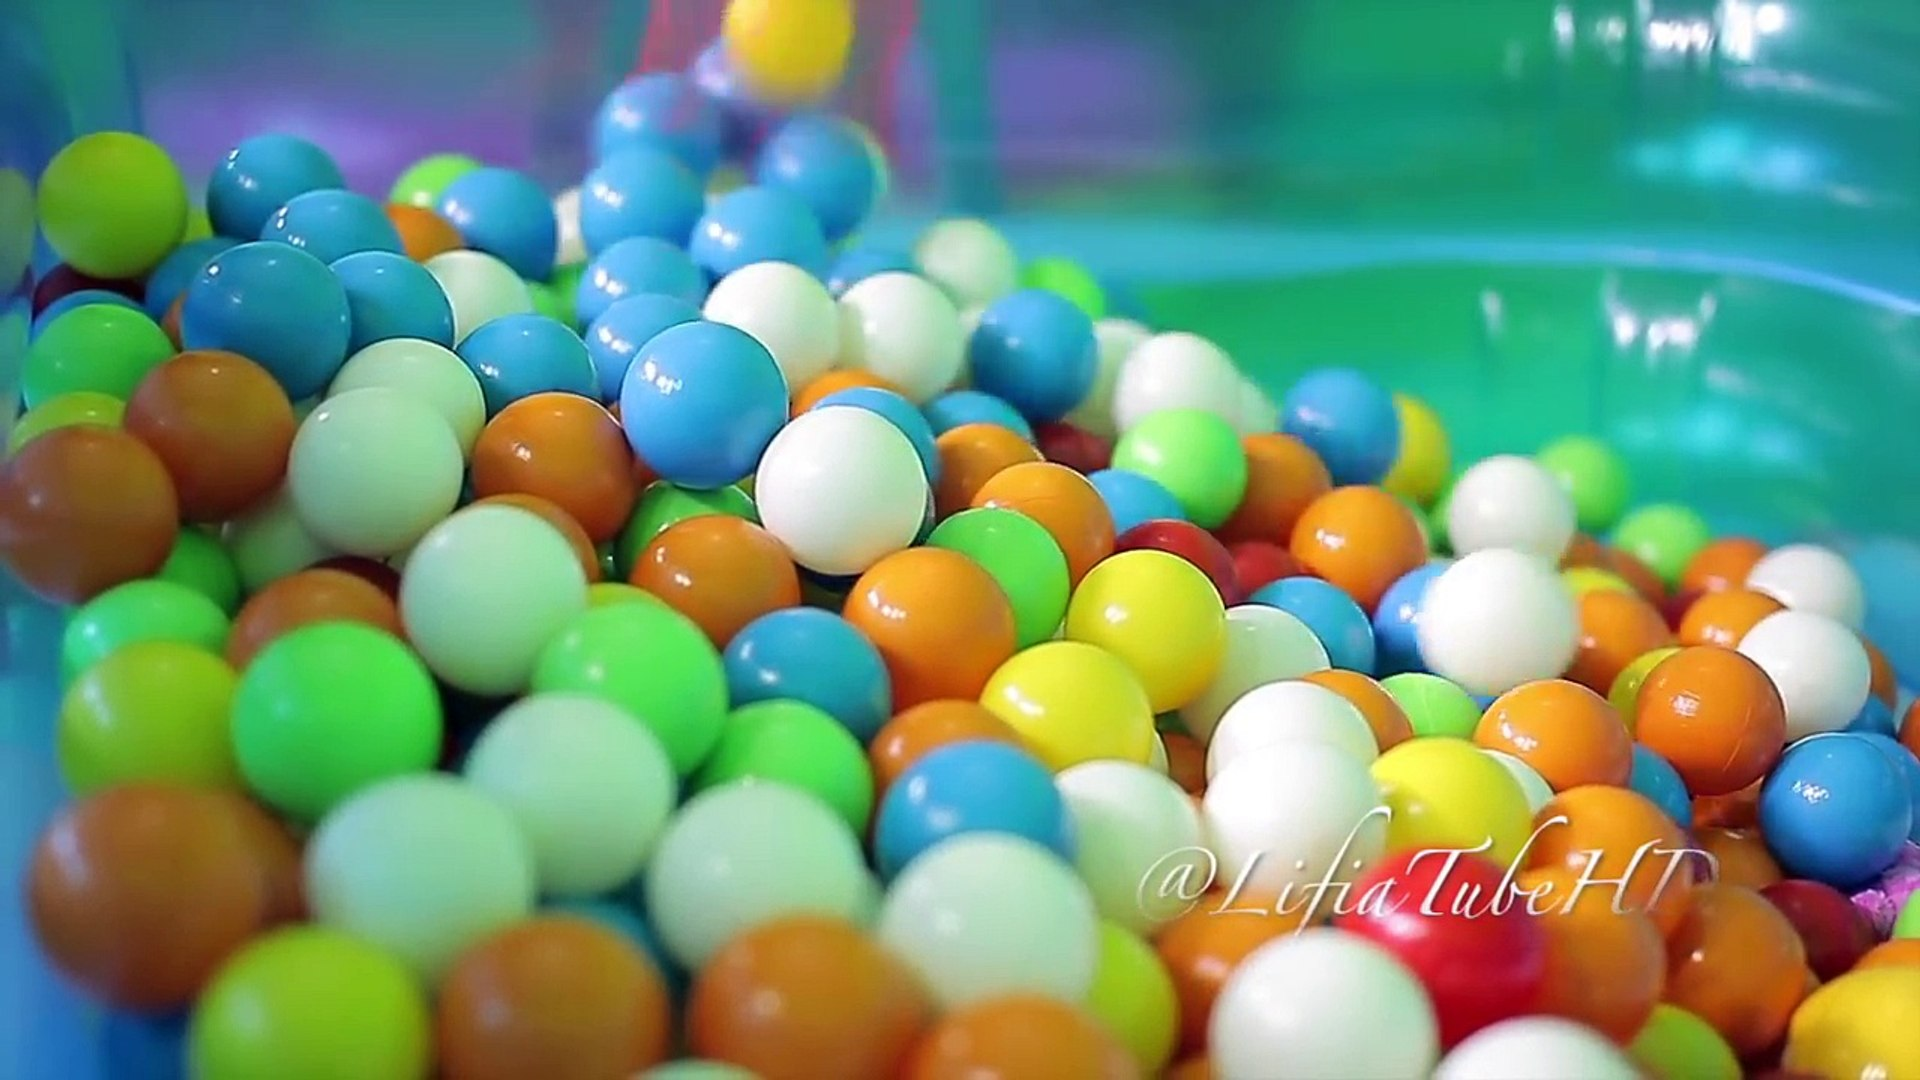 Ball Pit Show for Toddler ❤ Fun kids play and learning ❤ Kids Pool Fun Balls @LifiaTubeHD